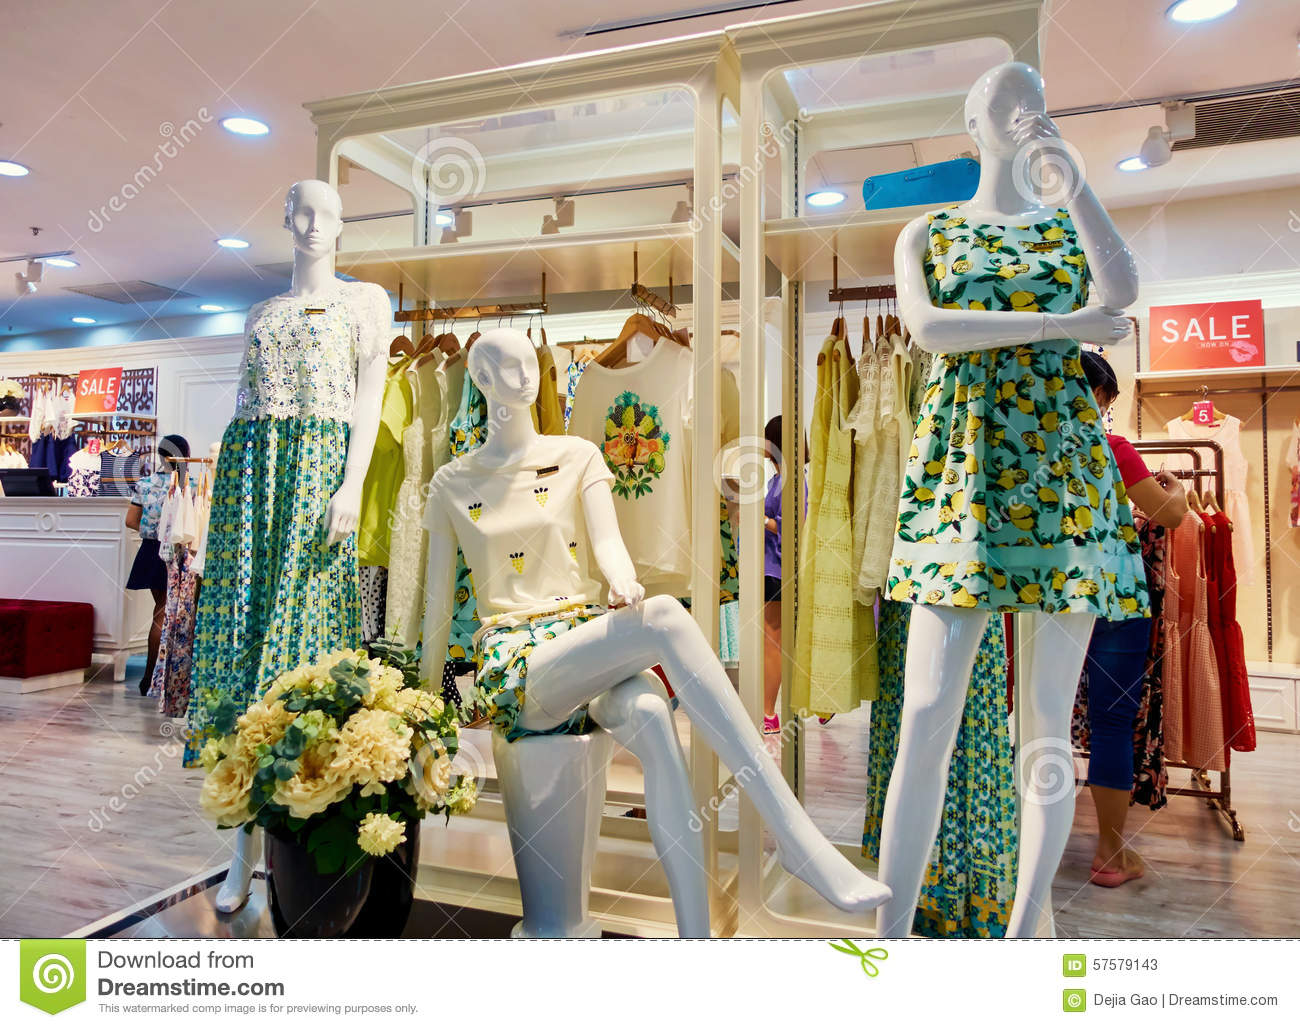 Clothes shops for women